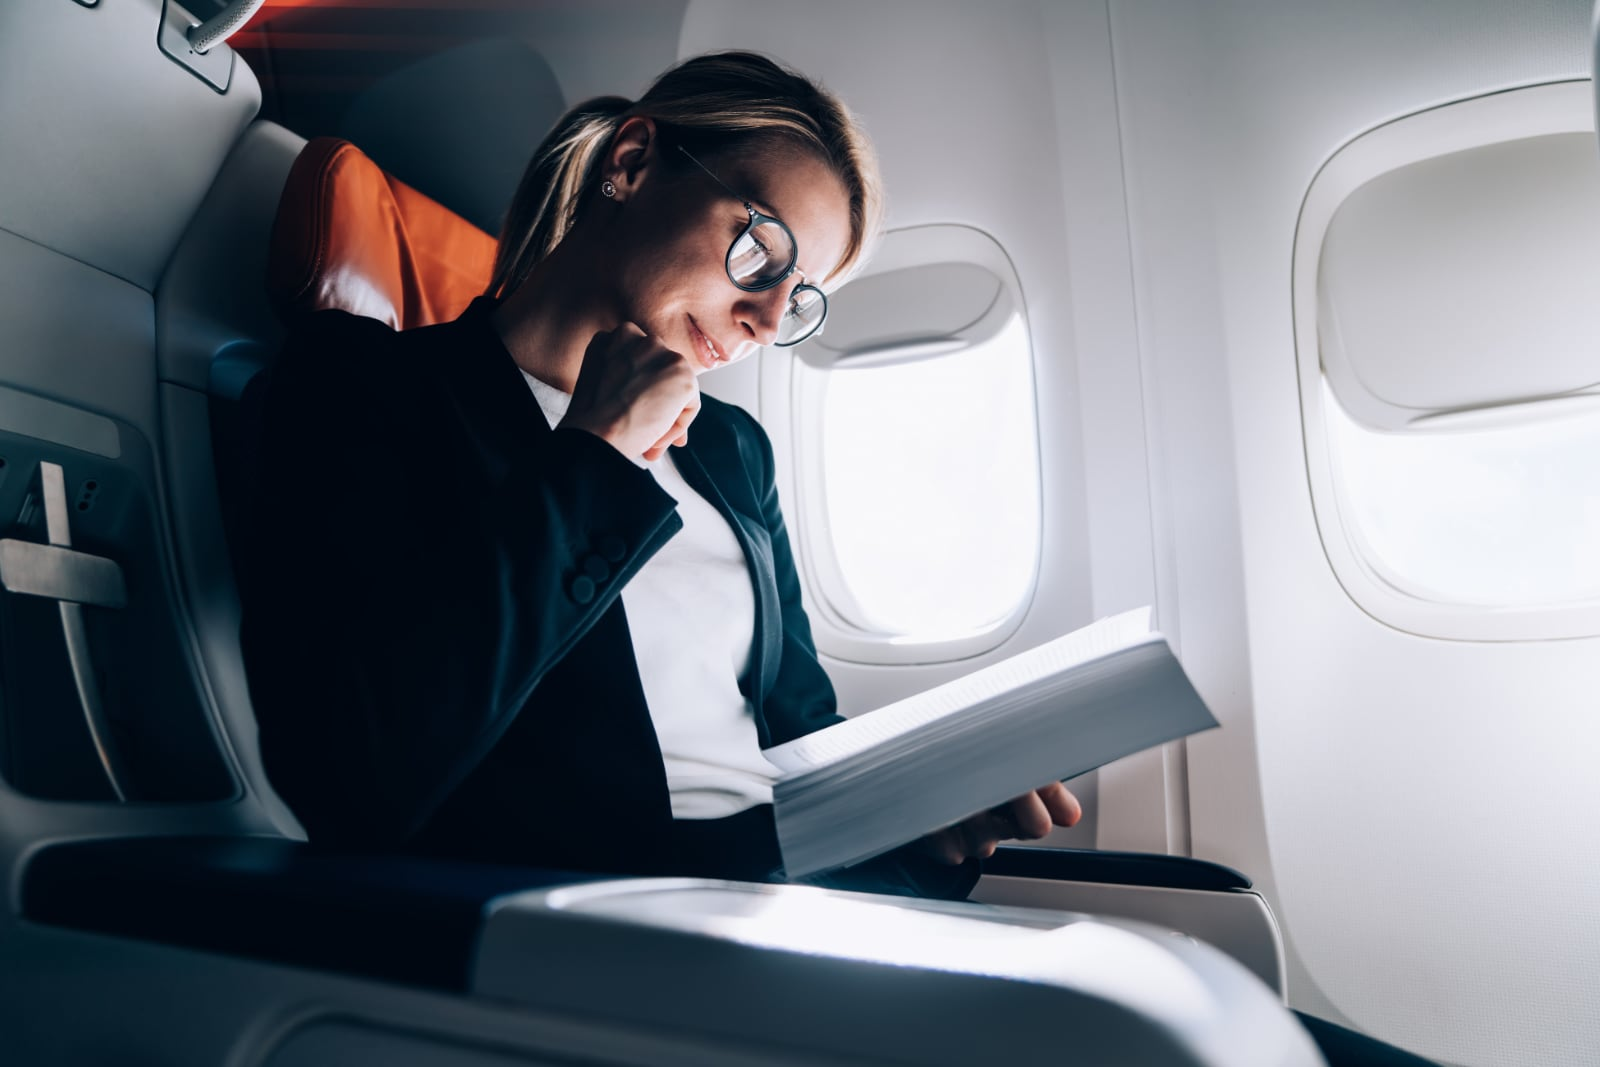 Woman reading a book during her flight